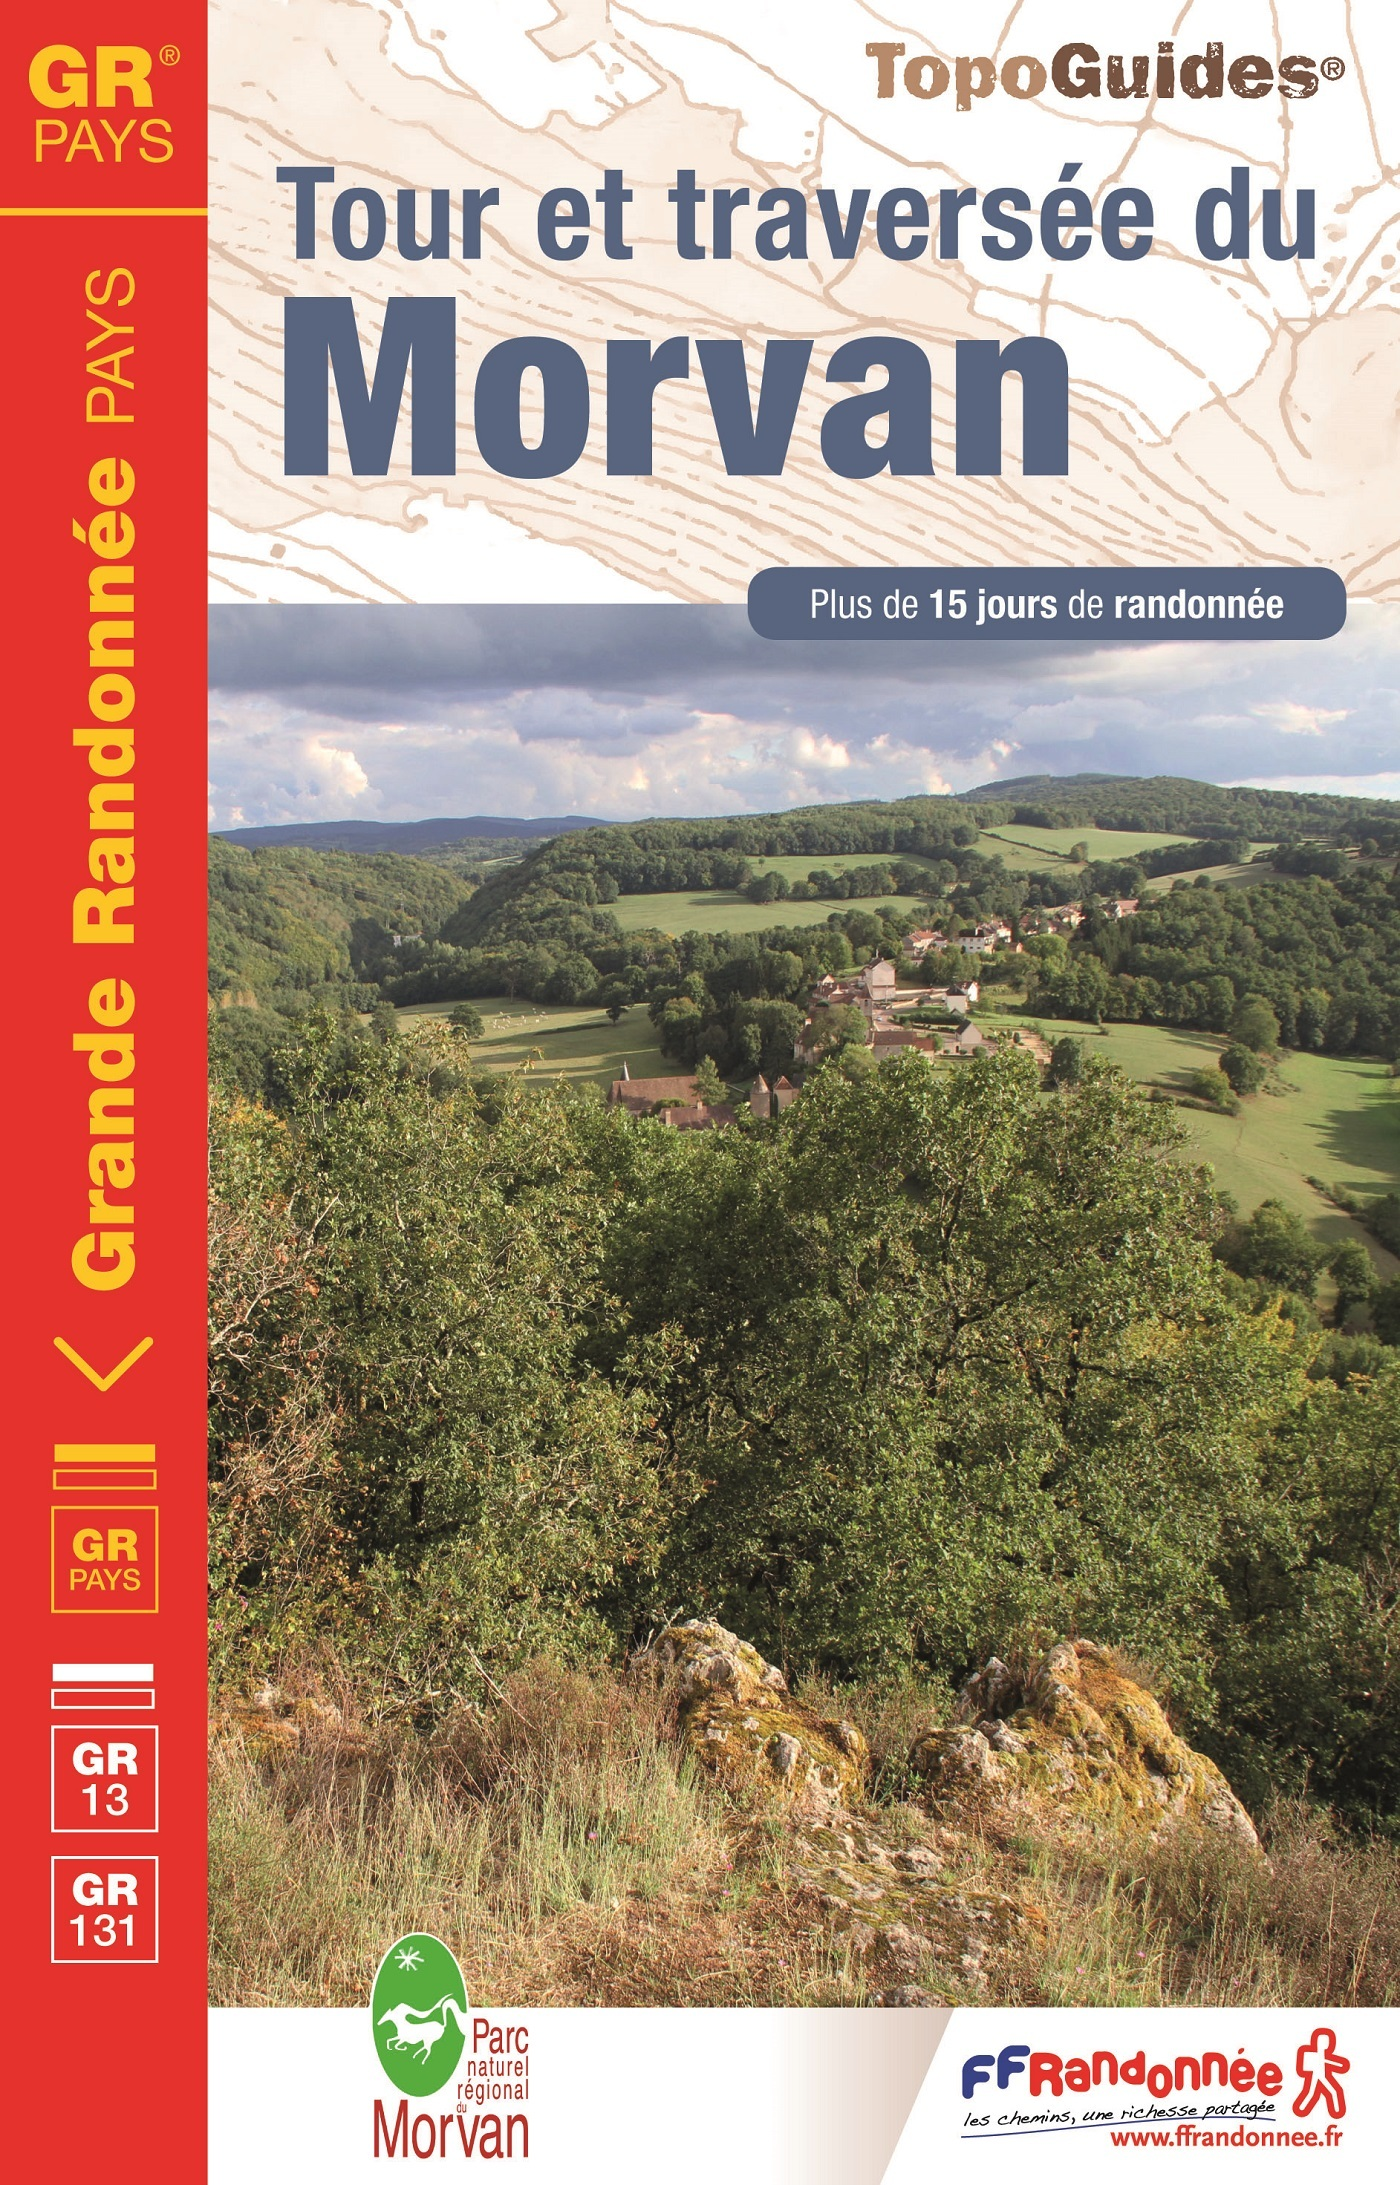 TOUR TRAVERSEE MORVAN NED 2017 - 21-89-58-71 - GR - 111